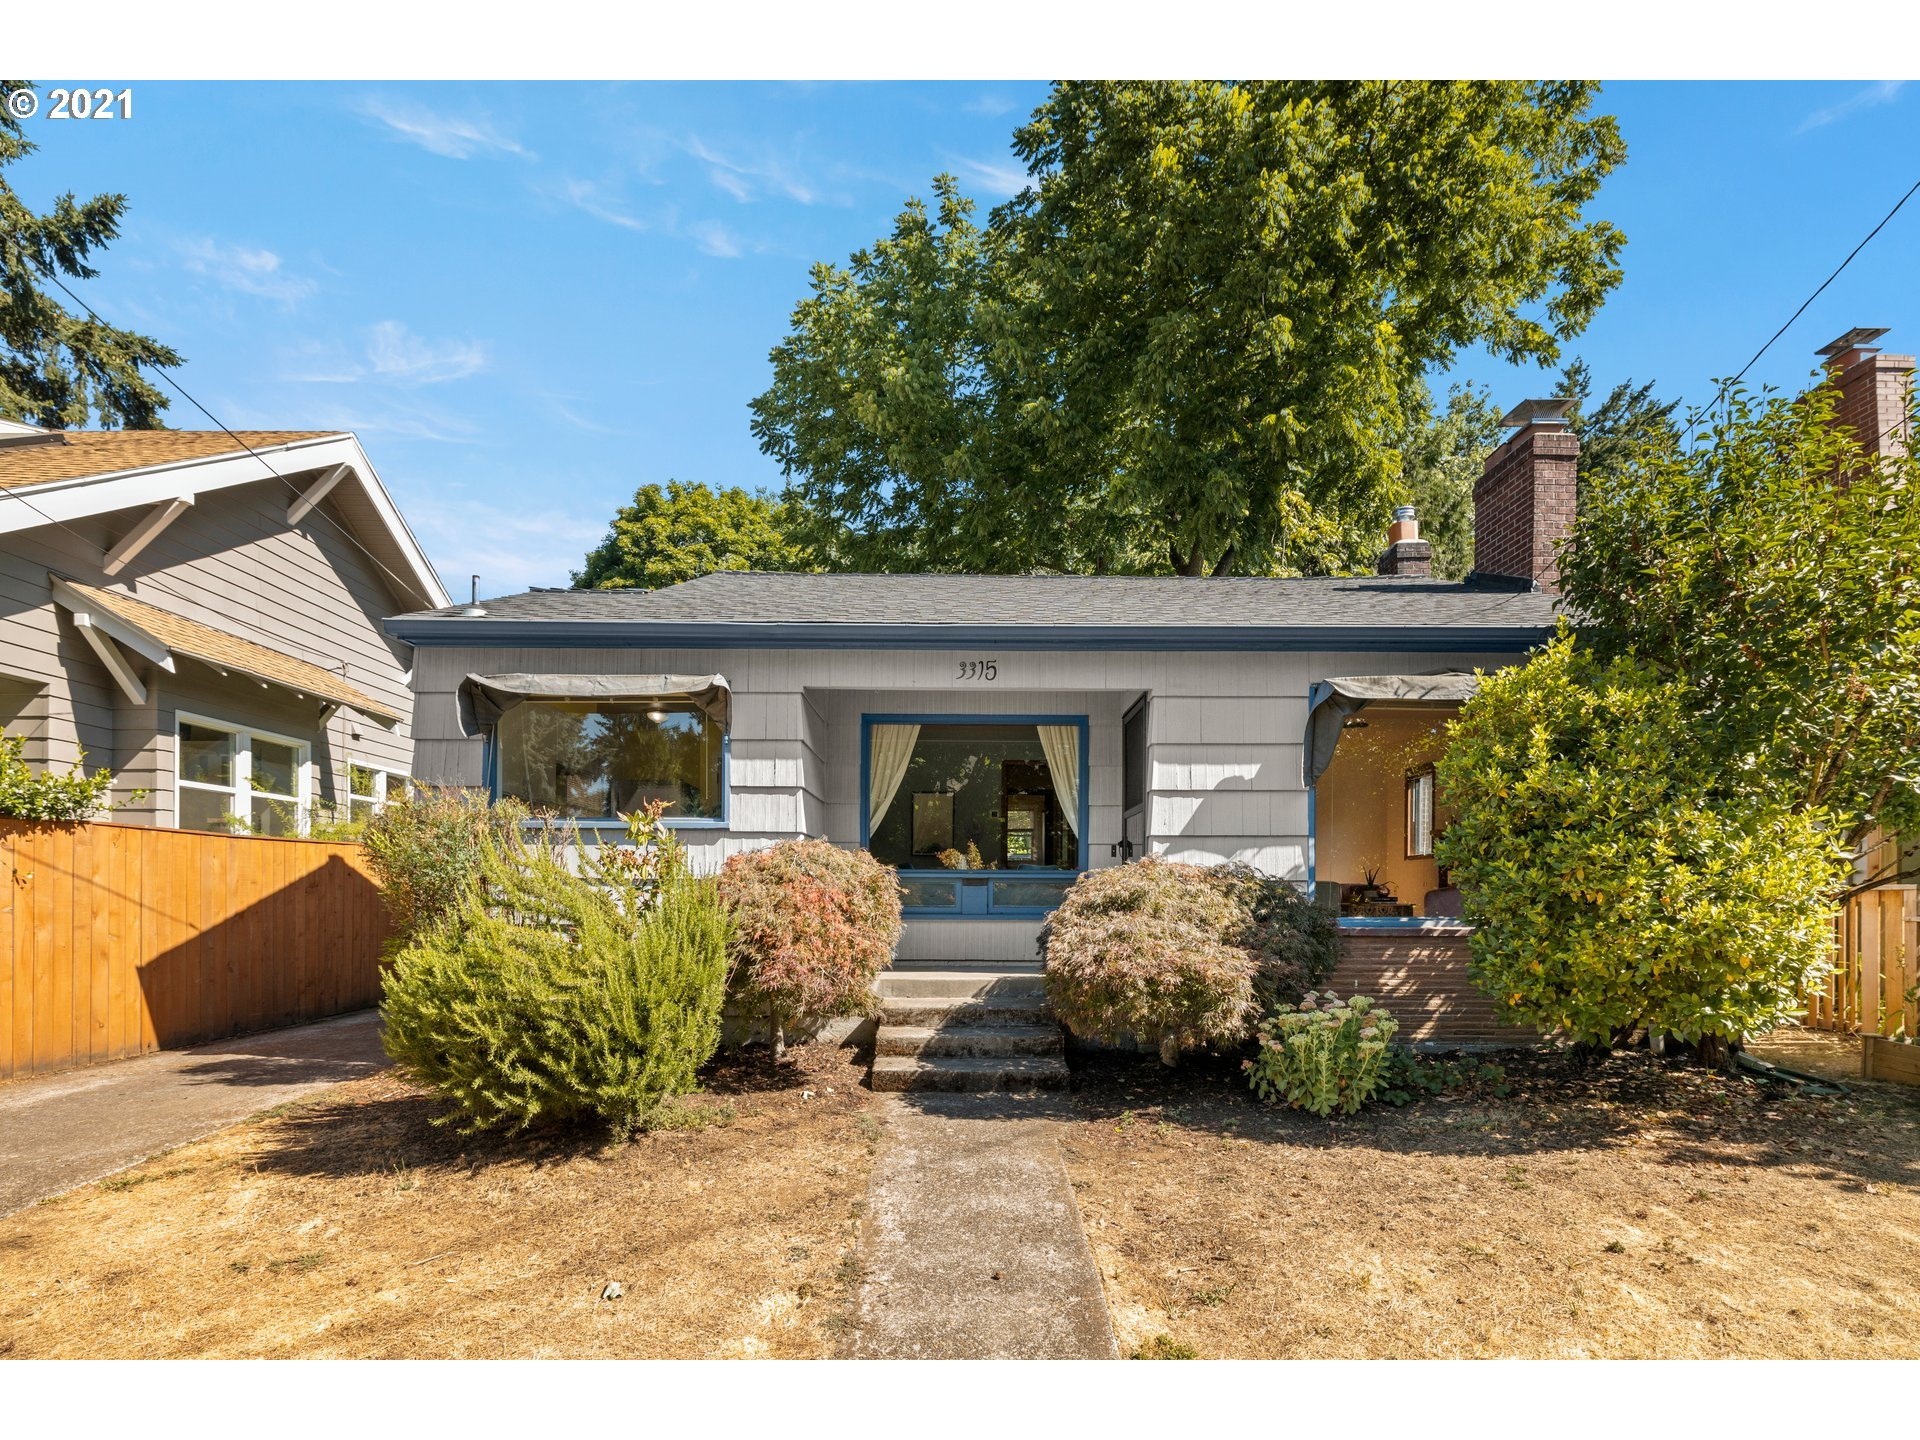 When location matters, you can't pass on being in the heart of the Wilshire & Alameda area! This little jewel really shines with superb blend of hardwoods + mahogany; a sunny kitchen w/ tiled floors & stainless appliances; excellent storage and bonus space in LL that could be used for guests, work, or that extra lounging space we all need. Mature landscaping in fully-fenced yard and raised garden bed takes advantage of southern light for growing.  Please see list of upgrades to systems, etc. [Home Energy Score = 7. HES Report at https://rpt.greenbuildingregistry.com/hes/OR10193427]